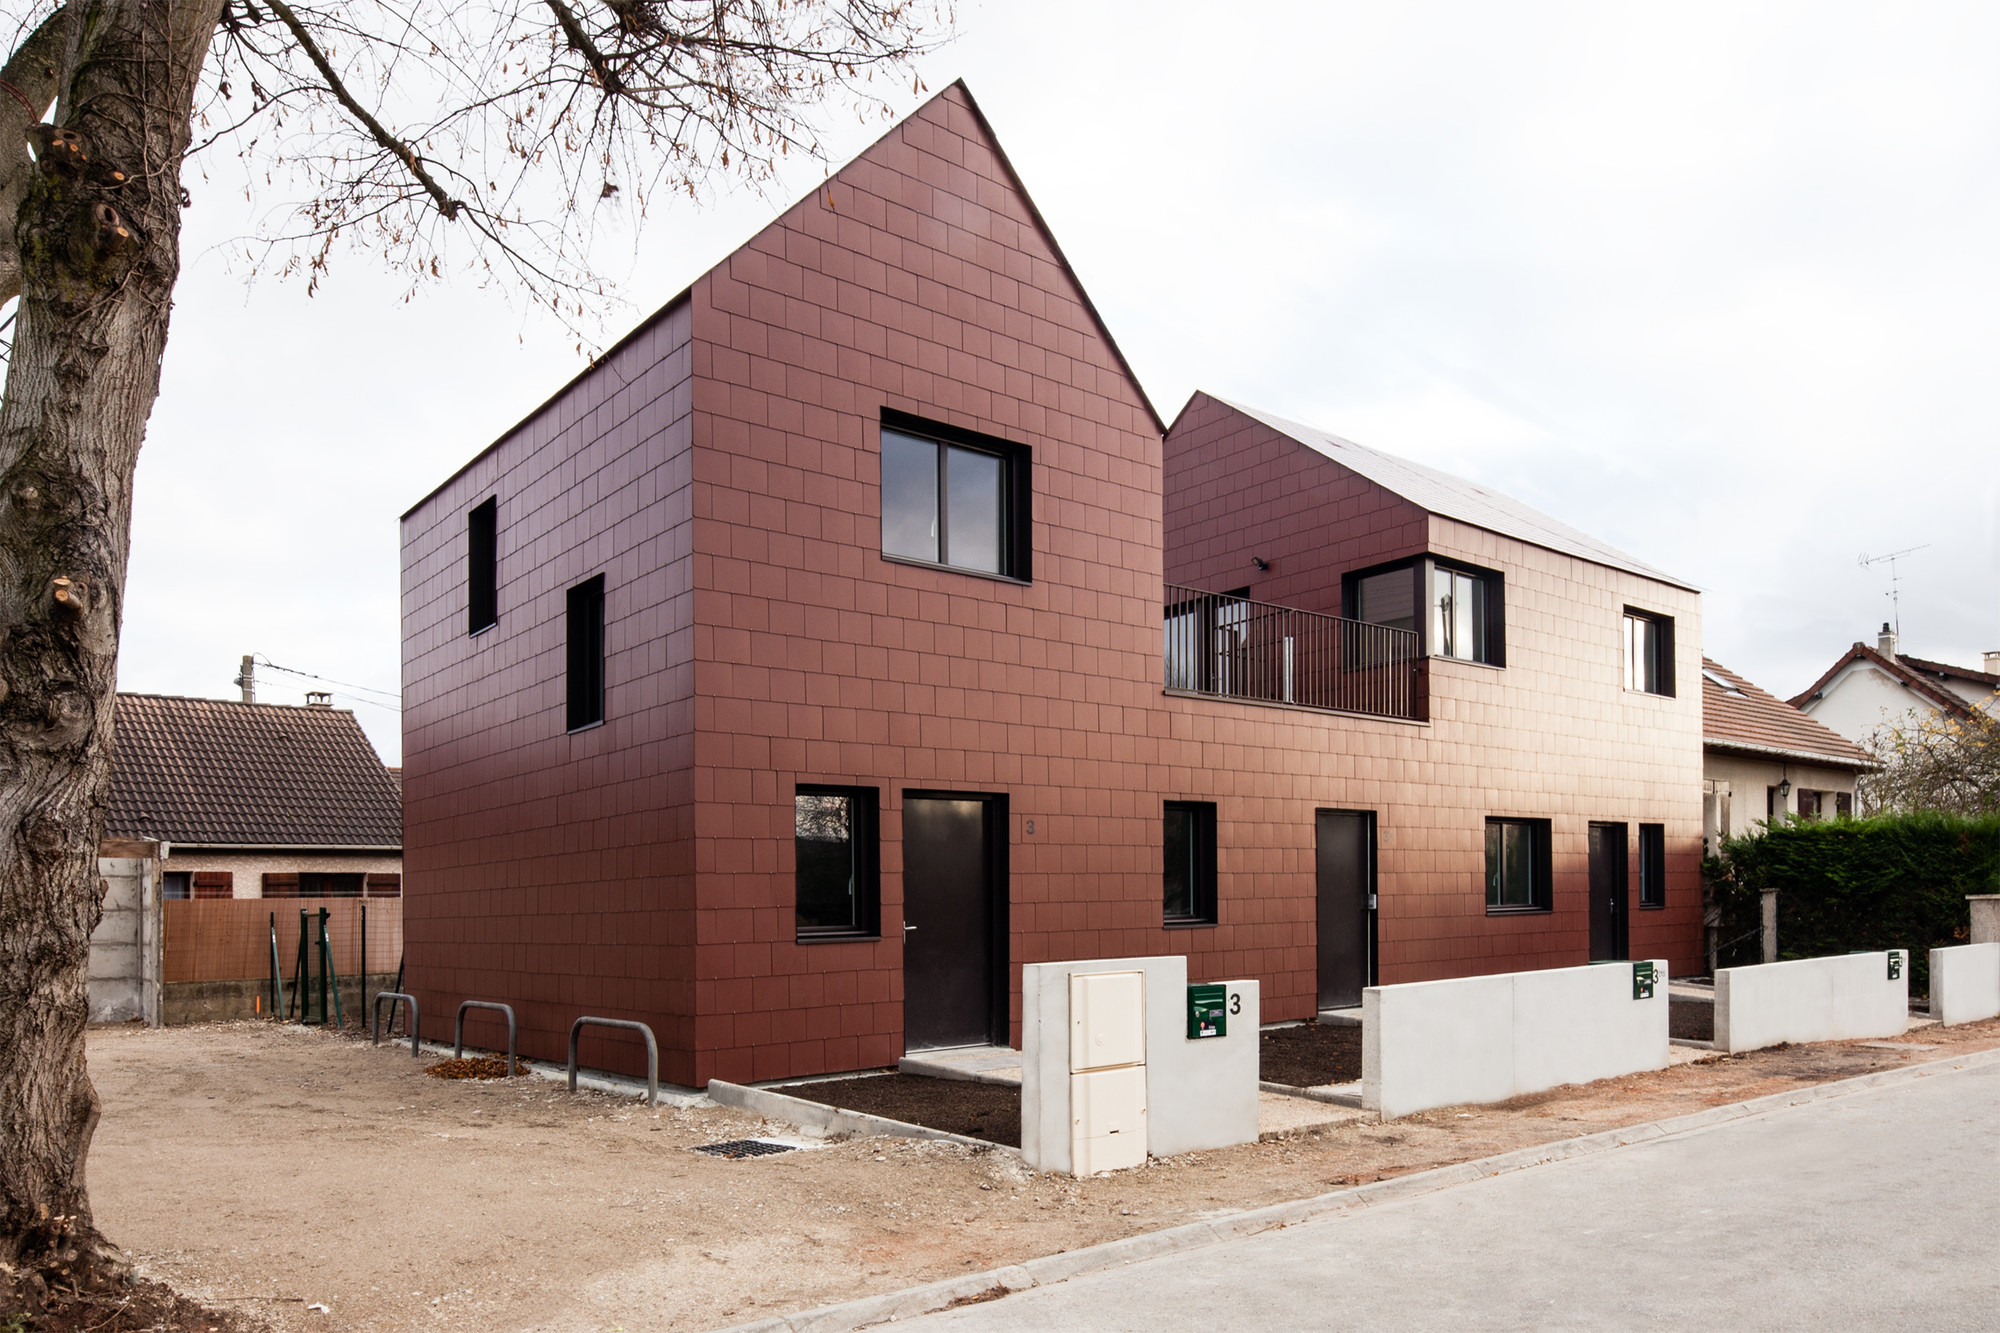 3 Social Dwellings / Chartier-Dalix architects, © Samuel Lehuede